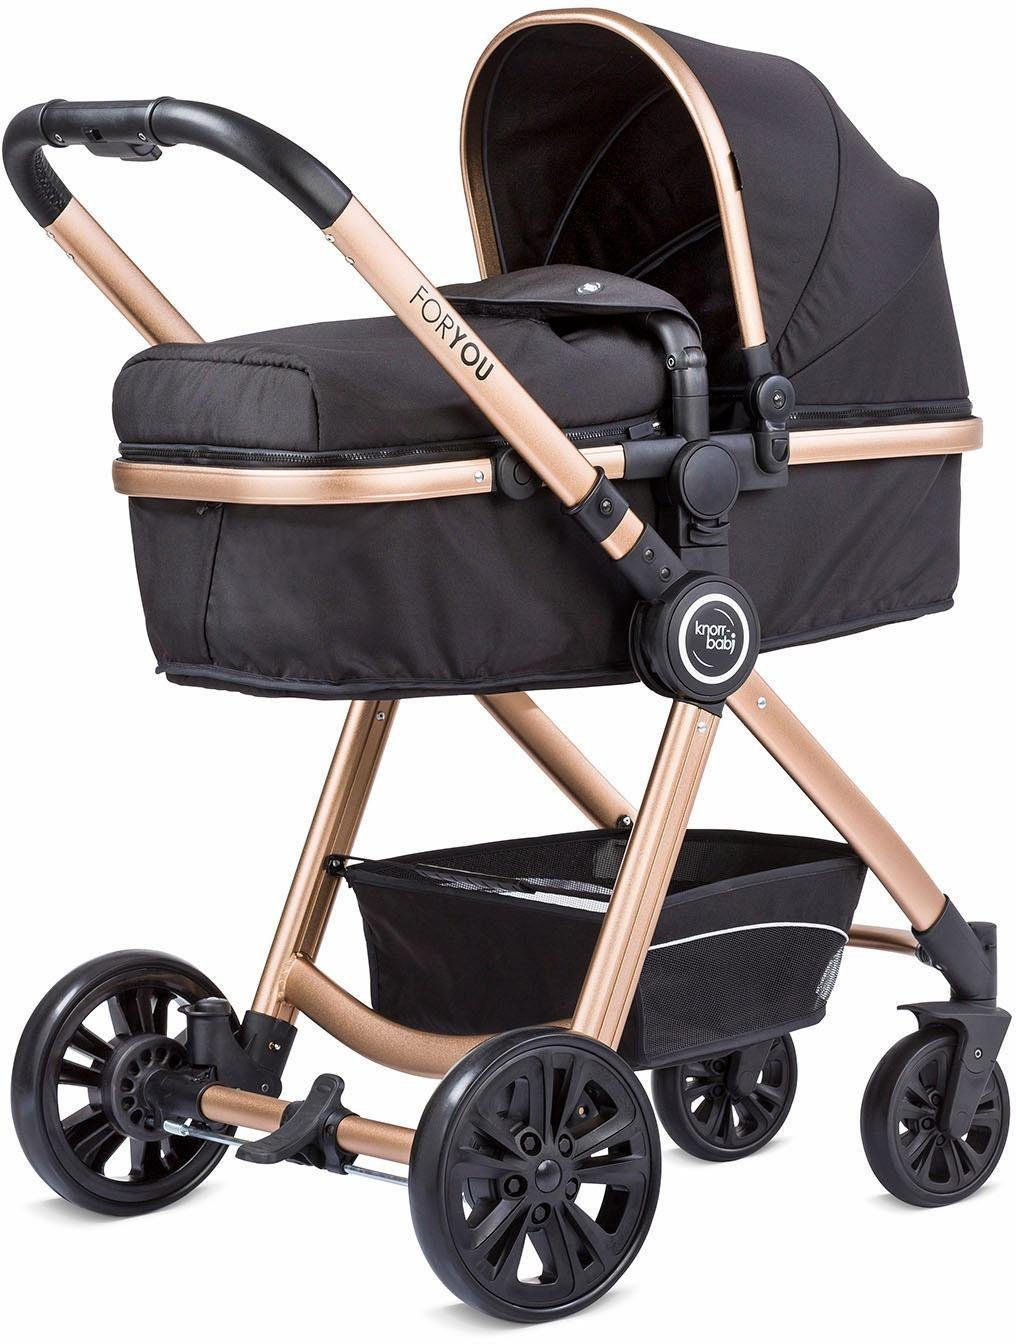 knorr-baby Kombi Kinderwagen, »For You, schwarz mit Gestell in gold«